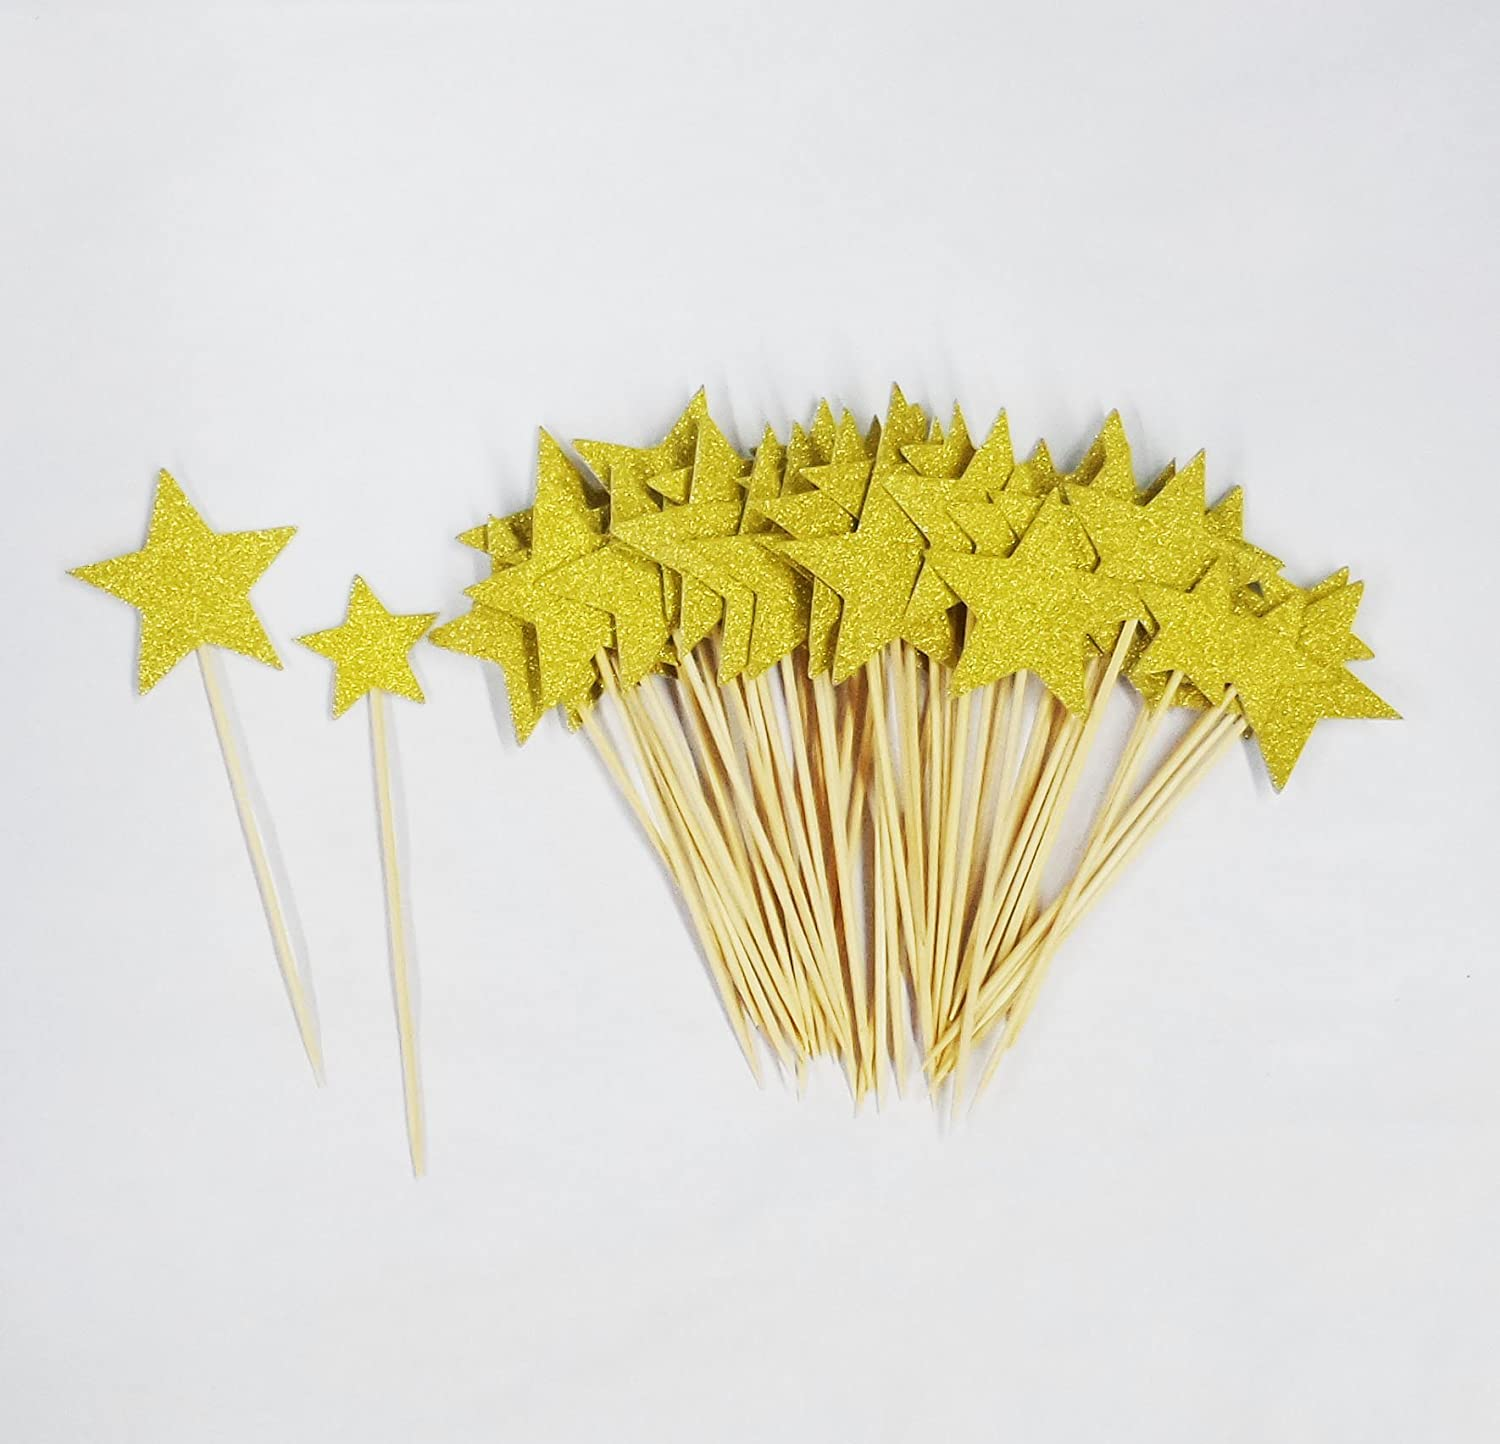 Lauren 48 Pcs Golden Star Two Size Cupcake Decorative Toppers Cake Decorating Tools for Party